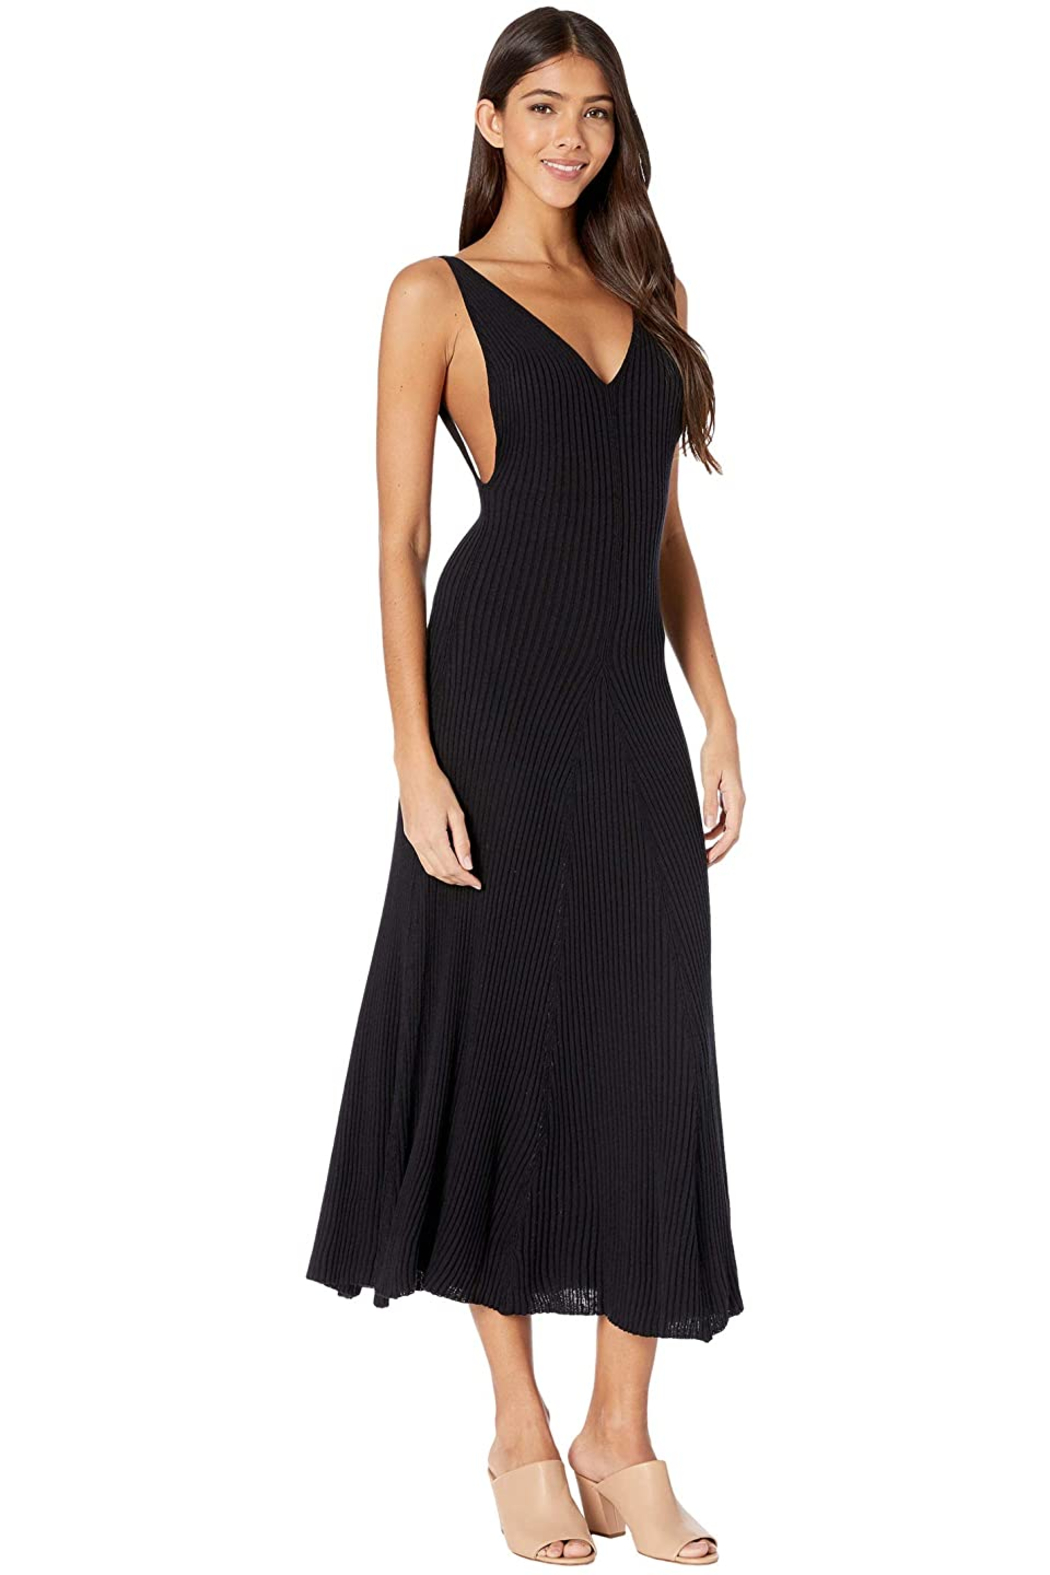 Free People Sweet Slip Dress in Black - Front Full Image